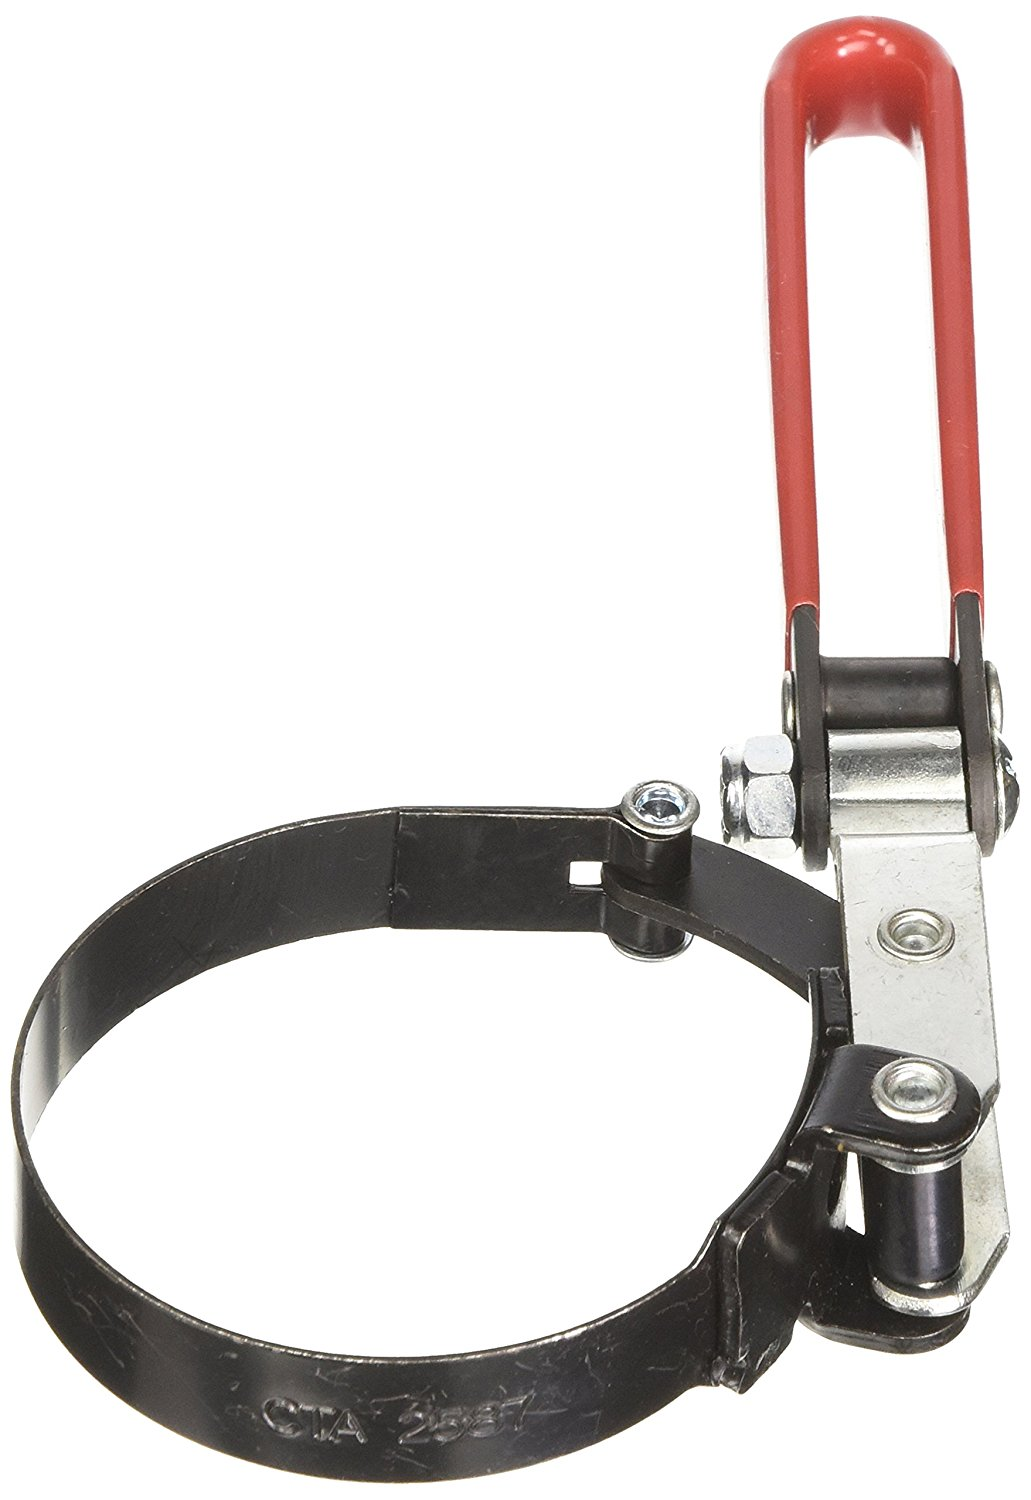 CTA Tools 2587 Compact Narrow-Band Swivel-Type Oil Filter Wrench